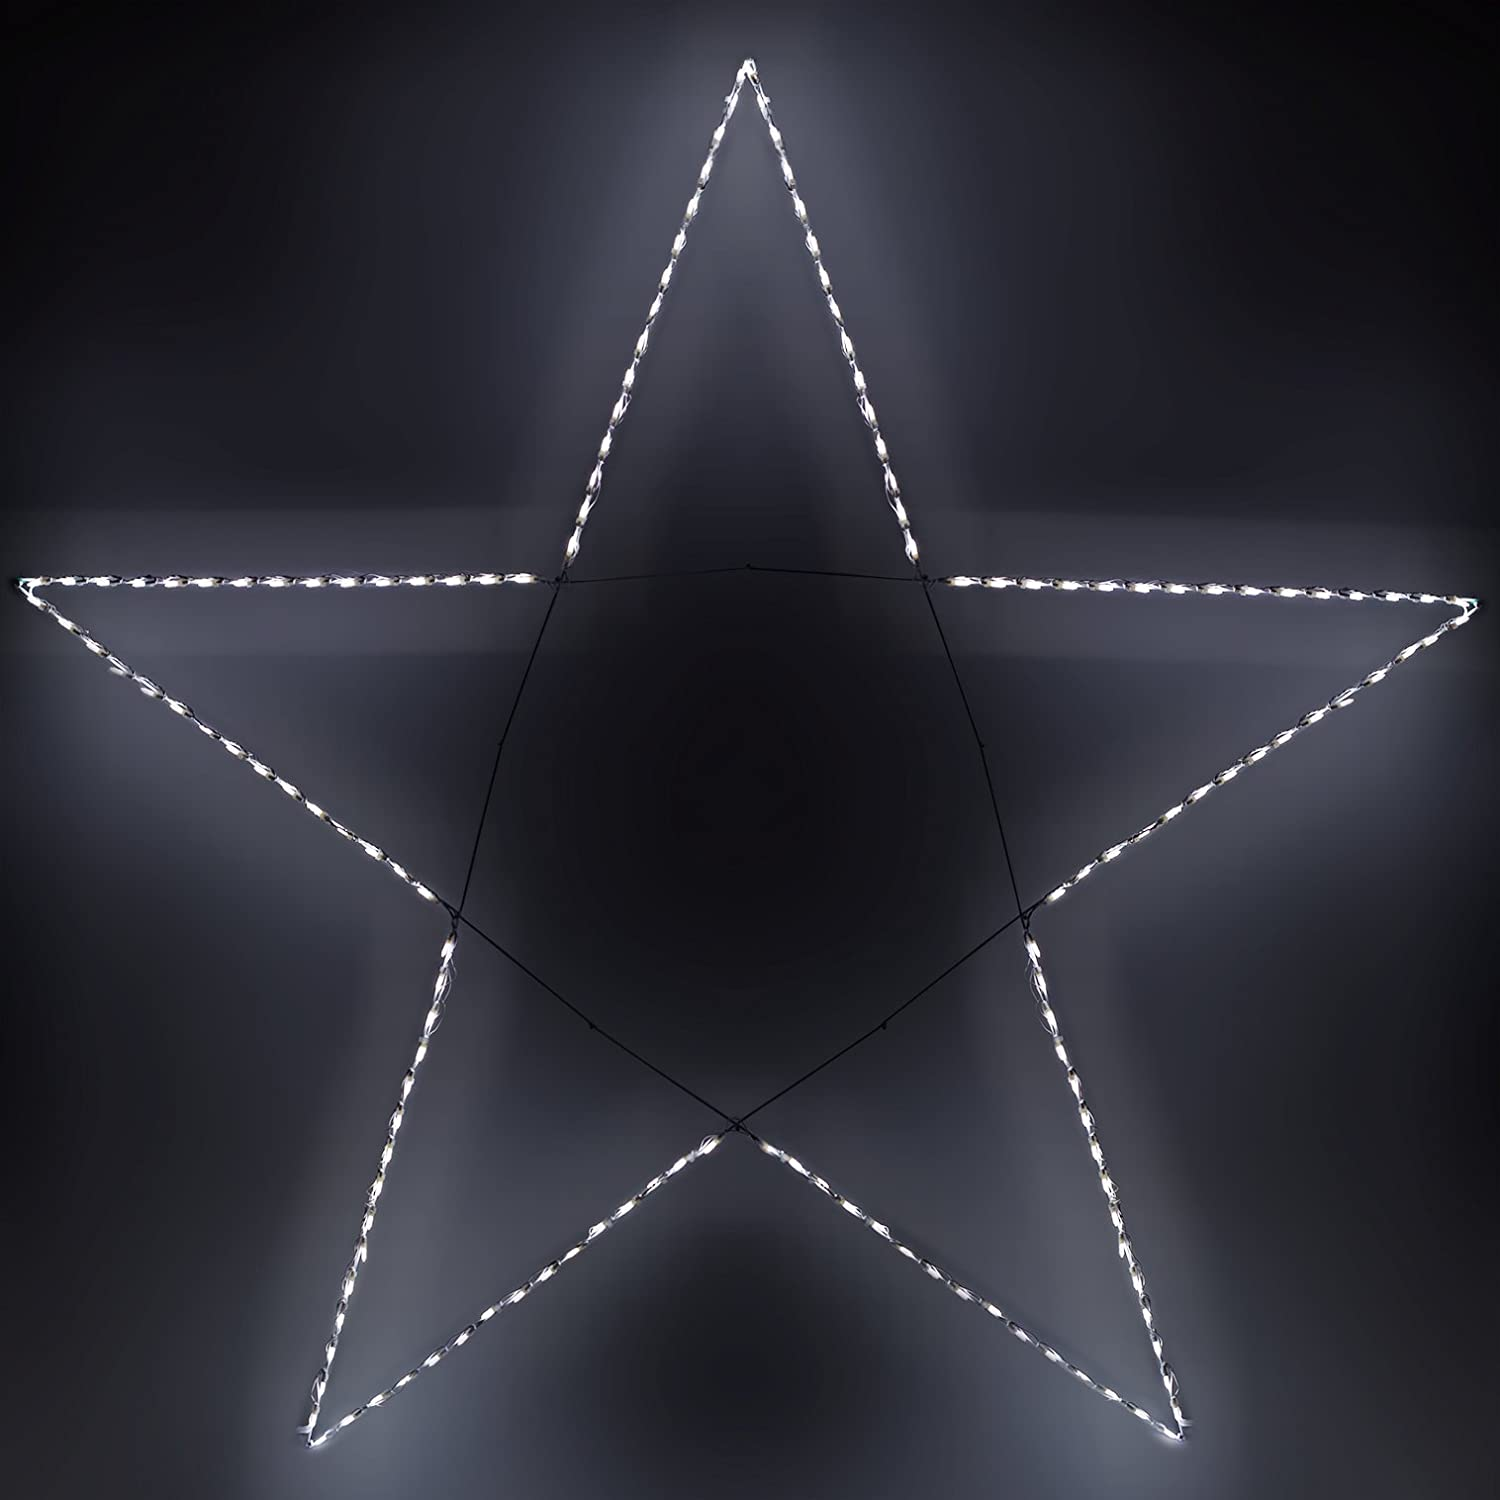 Amazon 85 giant led folding 5 point star 150 cool white amazon 85 giant led folding 5 point star 150 cool white lights string lights garden outdoor aloadofball Choice Image